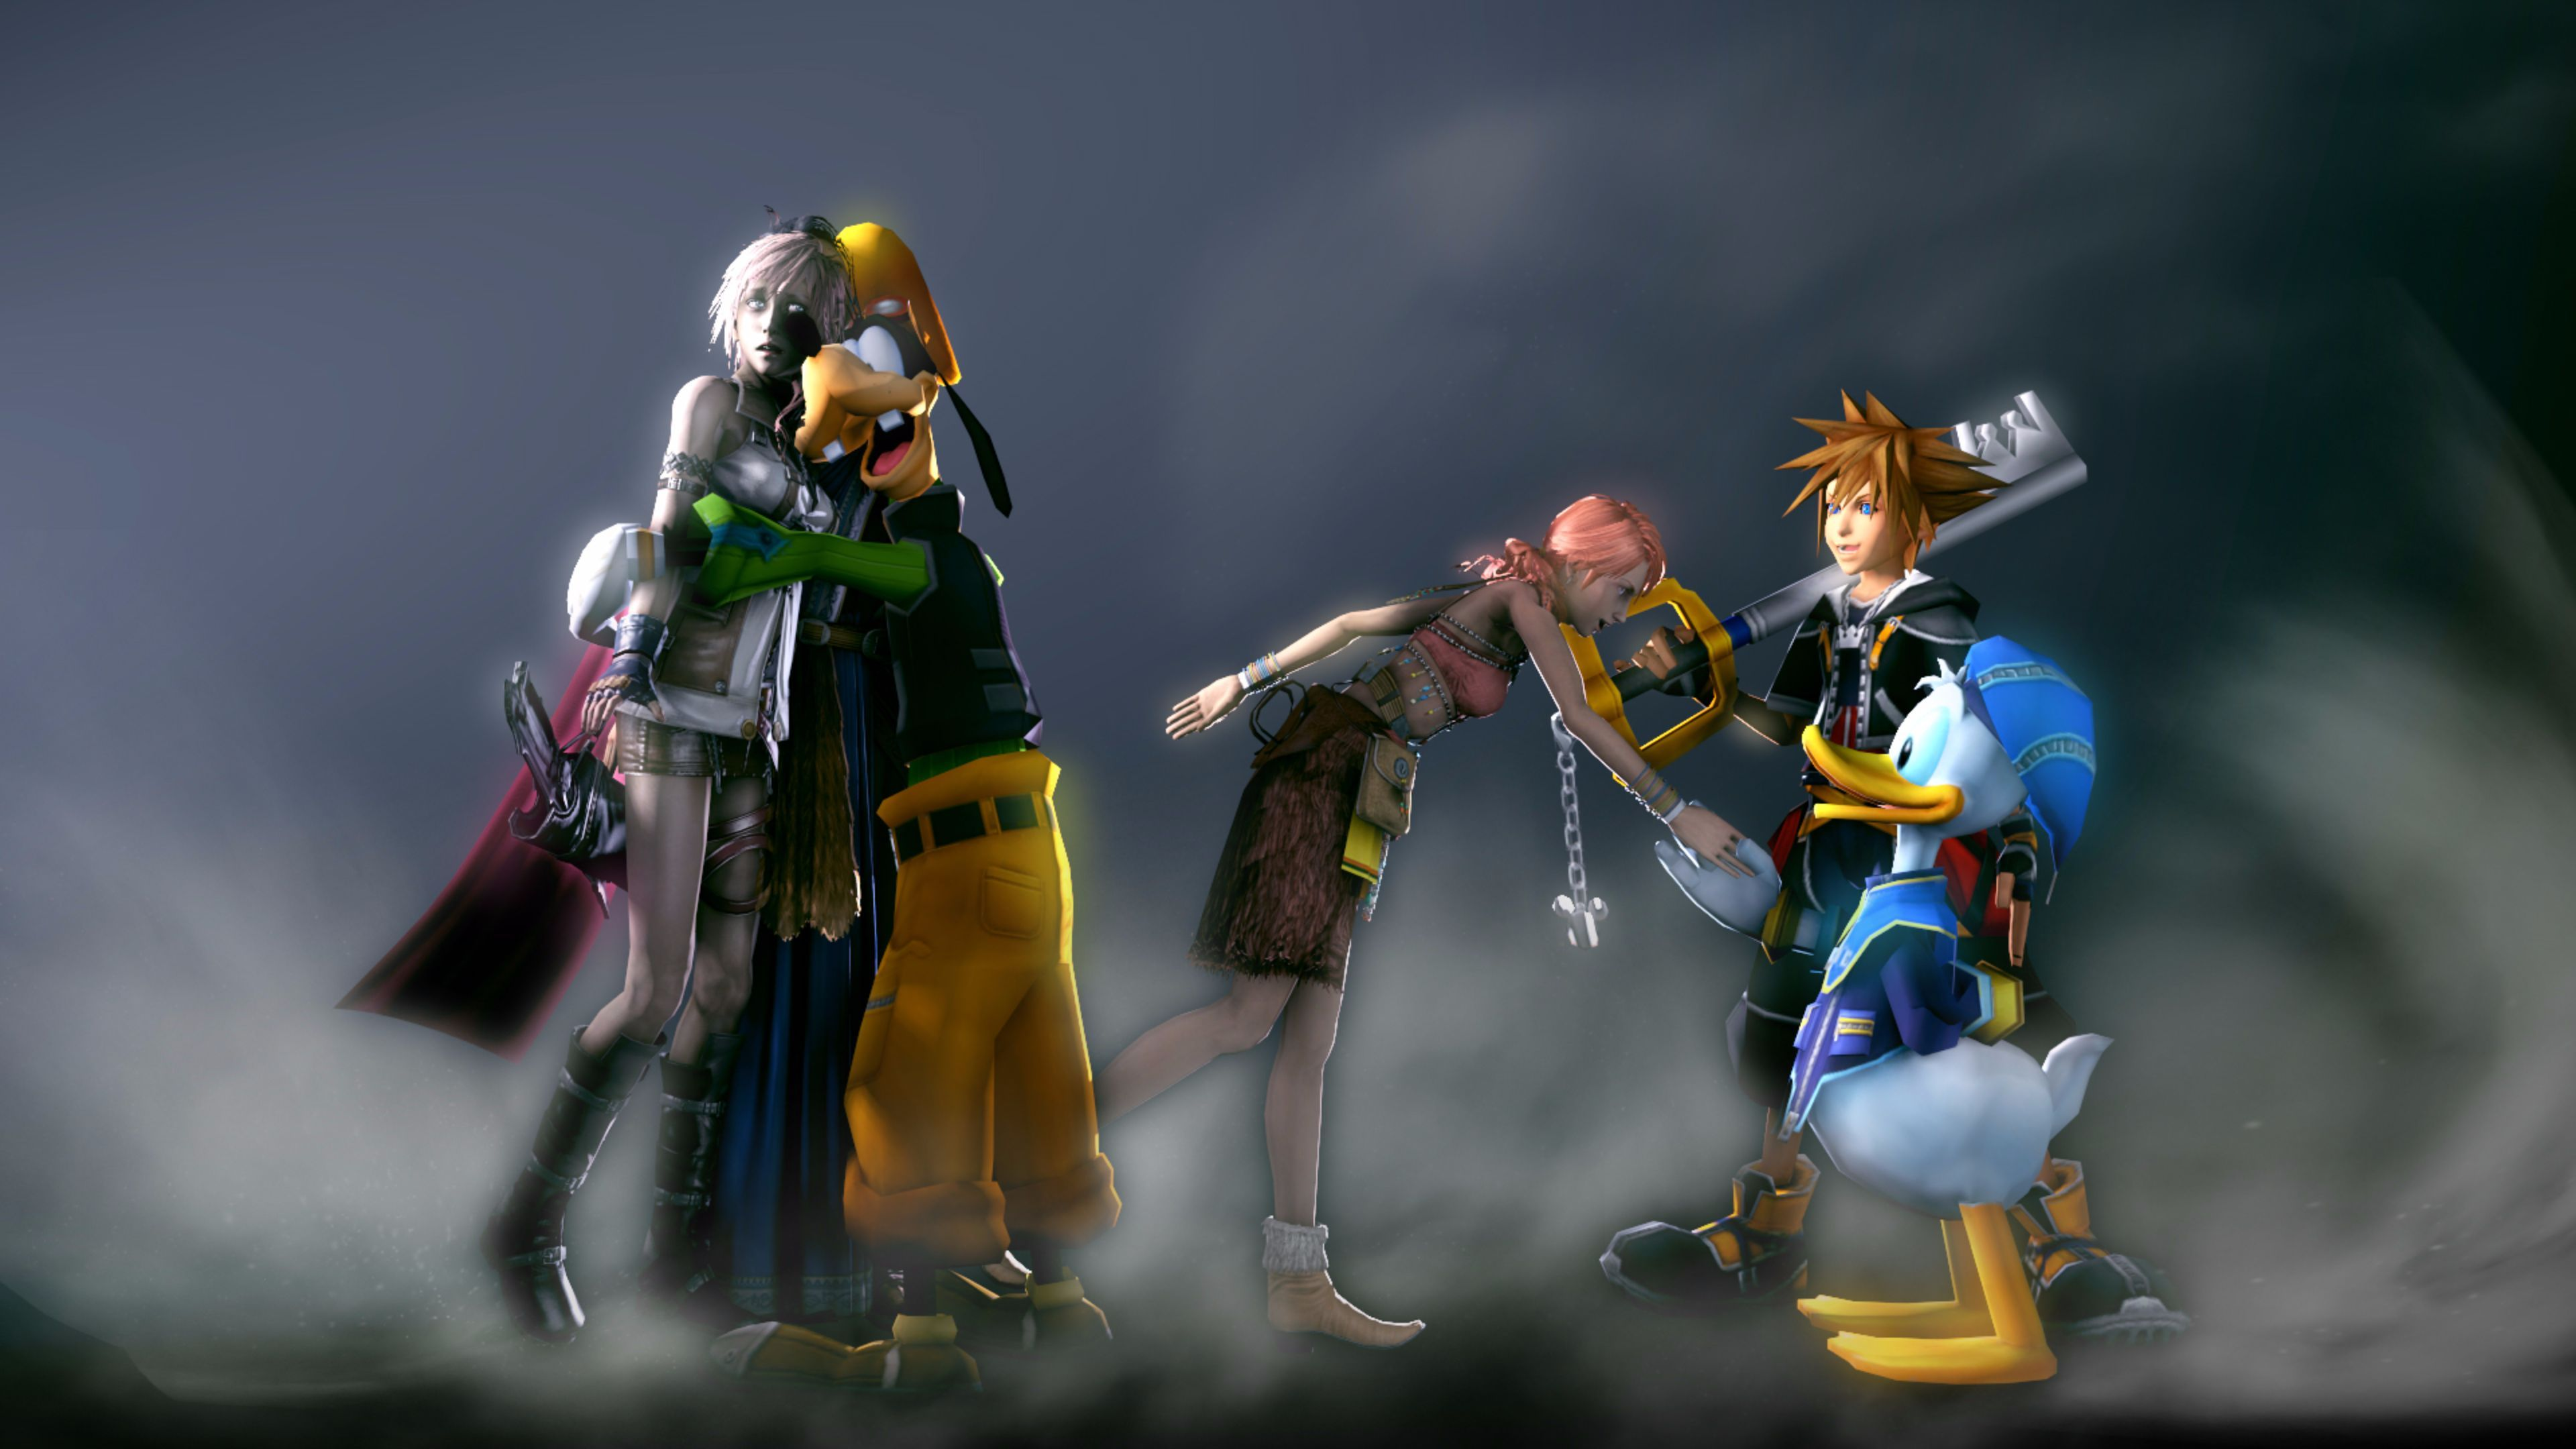 kingdom hearts 3 widescreen wallpaper 67190